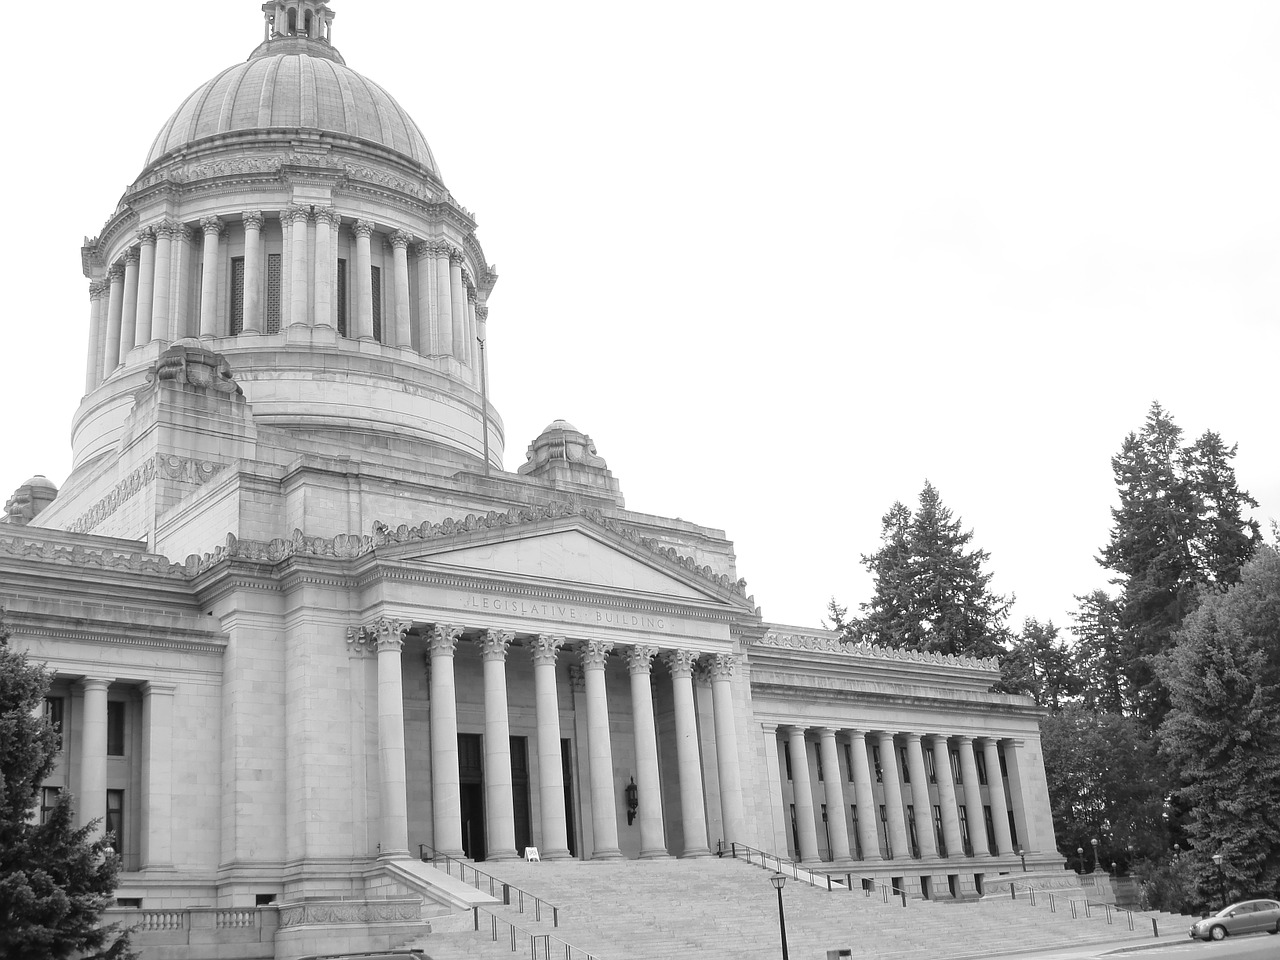 This month in state and local advocacy: the 2020 state legislative session is underway in Olympia; the Seattle Planning Commission weighs in on a new growth strategy for Seattle; Mayor Durkan issues a directive for all-electric municipal buildings; Seattle's pre-approved DADU program is open for submittals; SDCI seeks Accela feedback; and more!